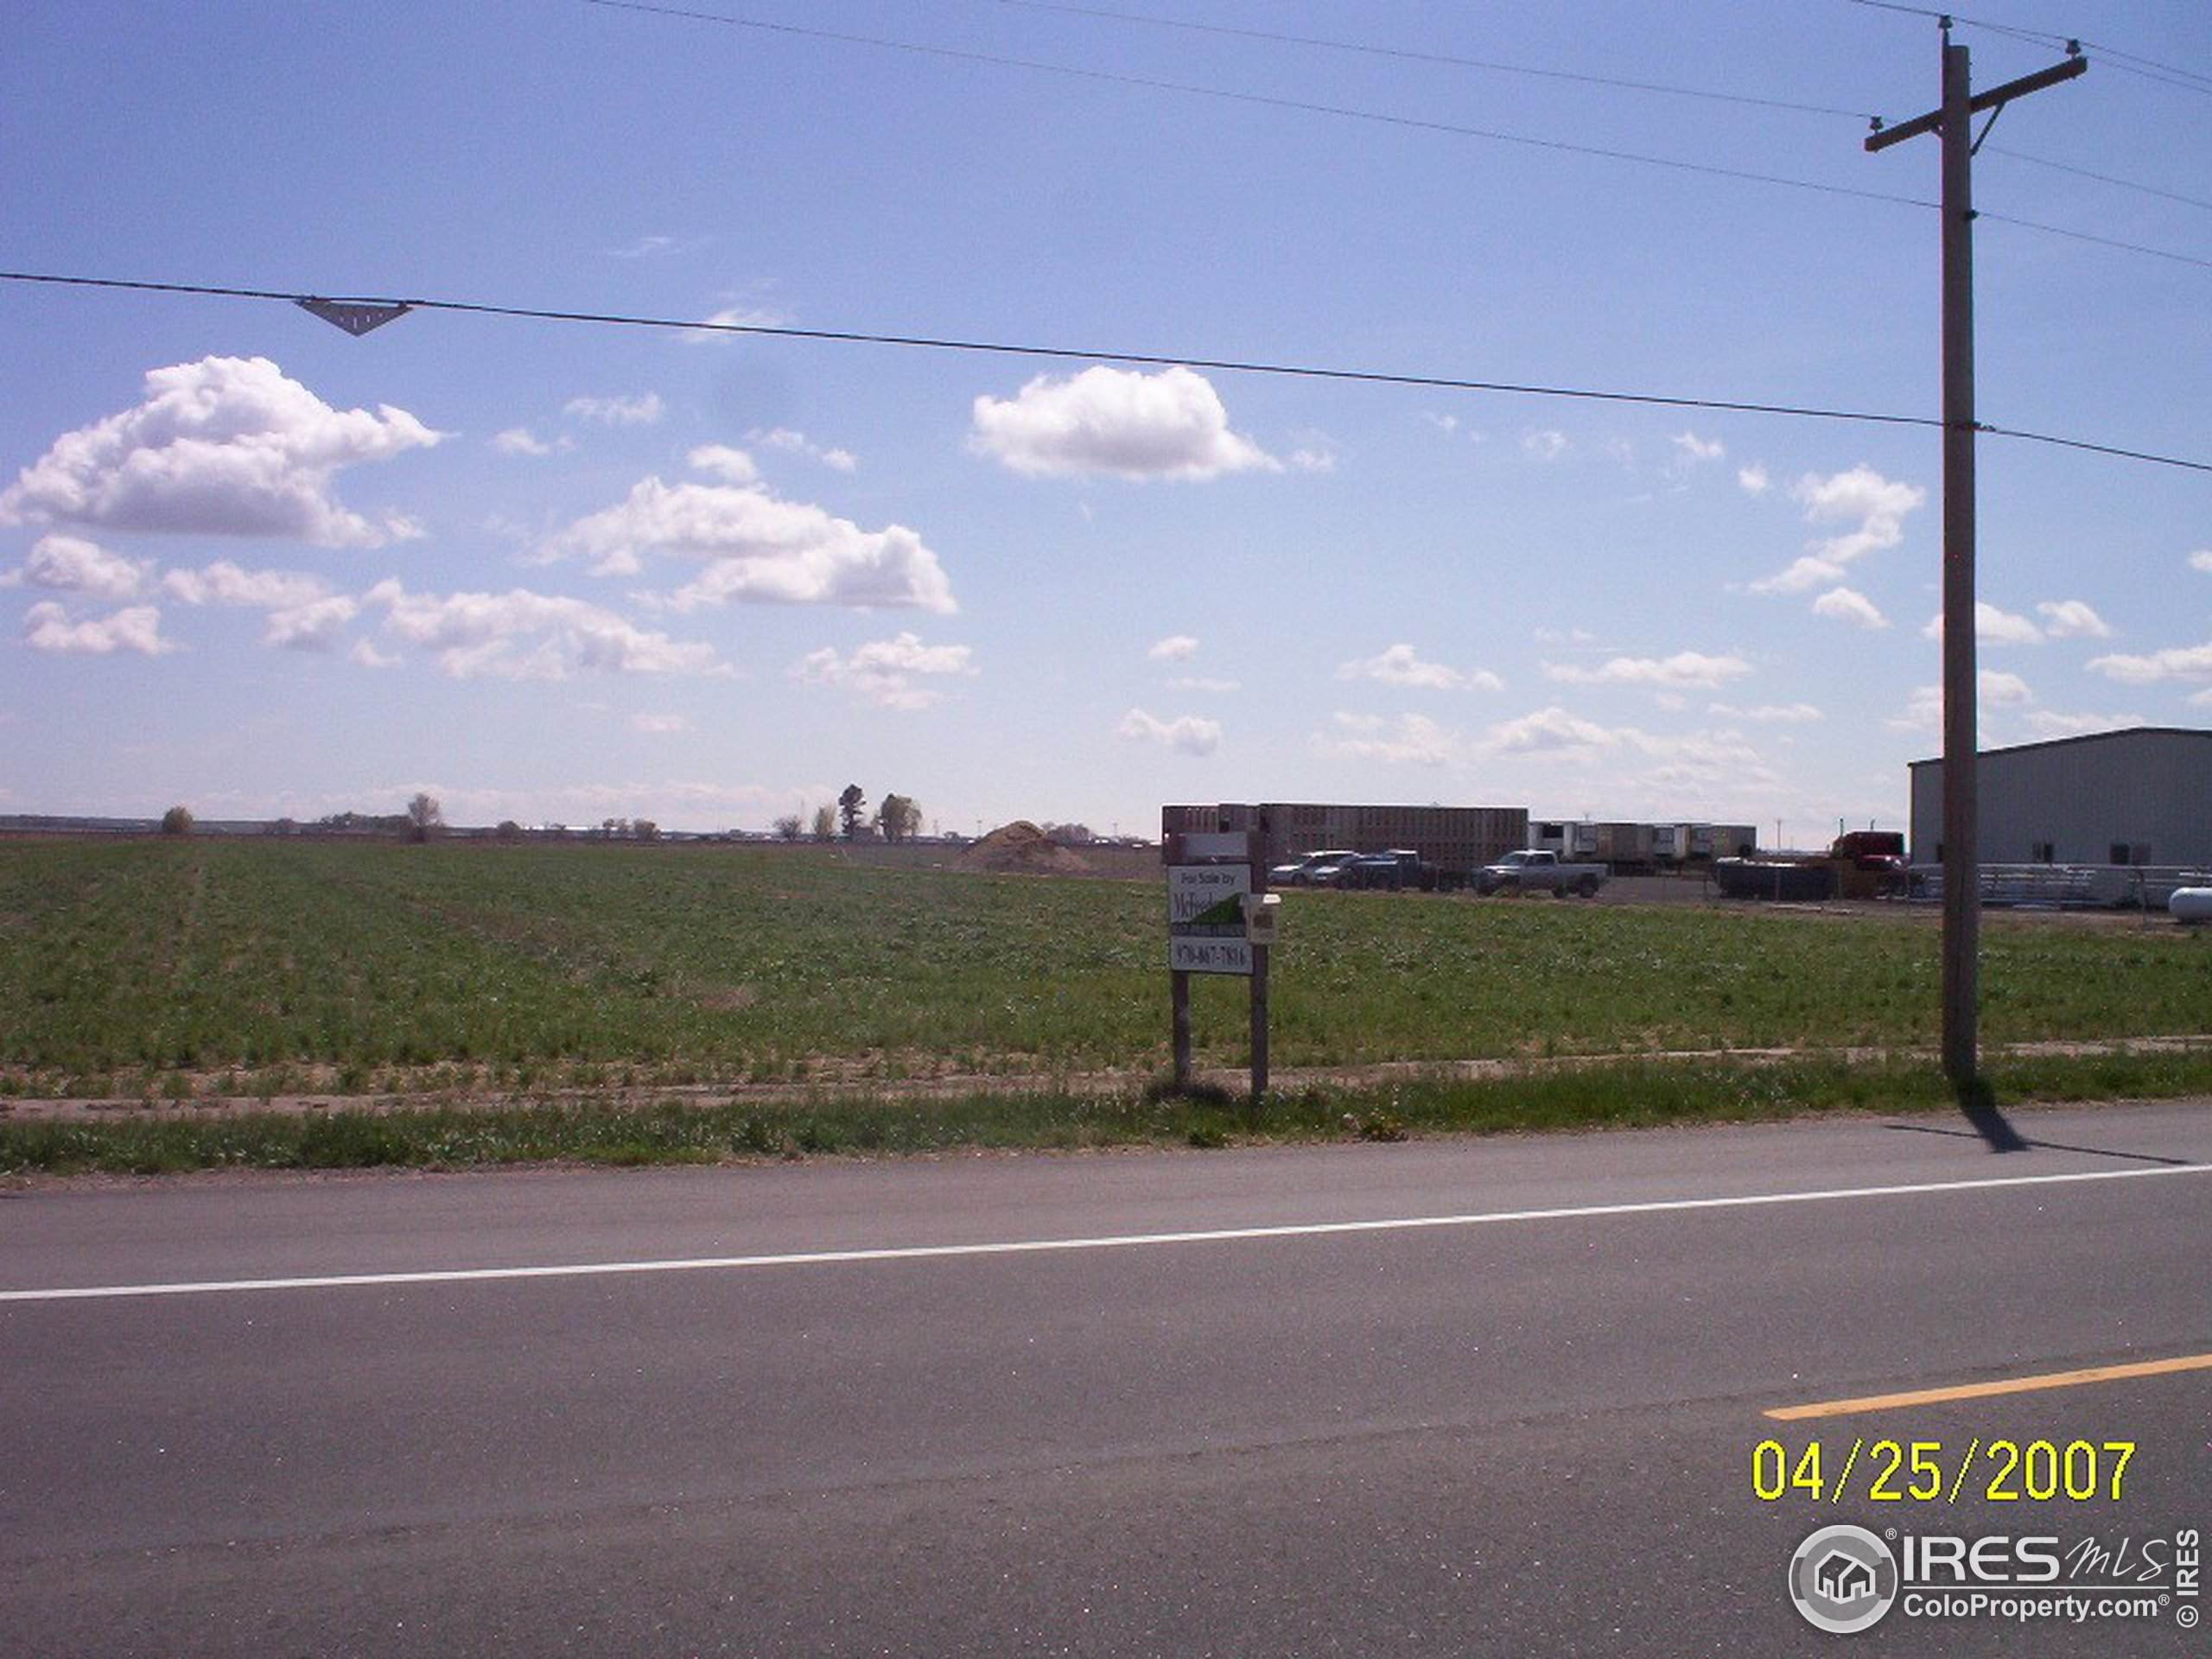 3240 Smoky Meadow Rd, Wellington, CO 80549 (MLS #907536) :: J2 Real Estate Group at Remax Alliance